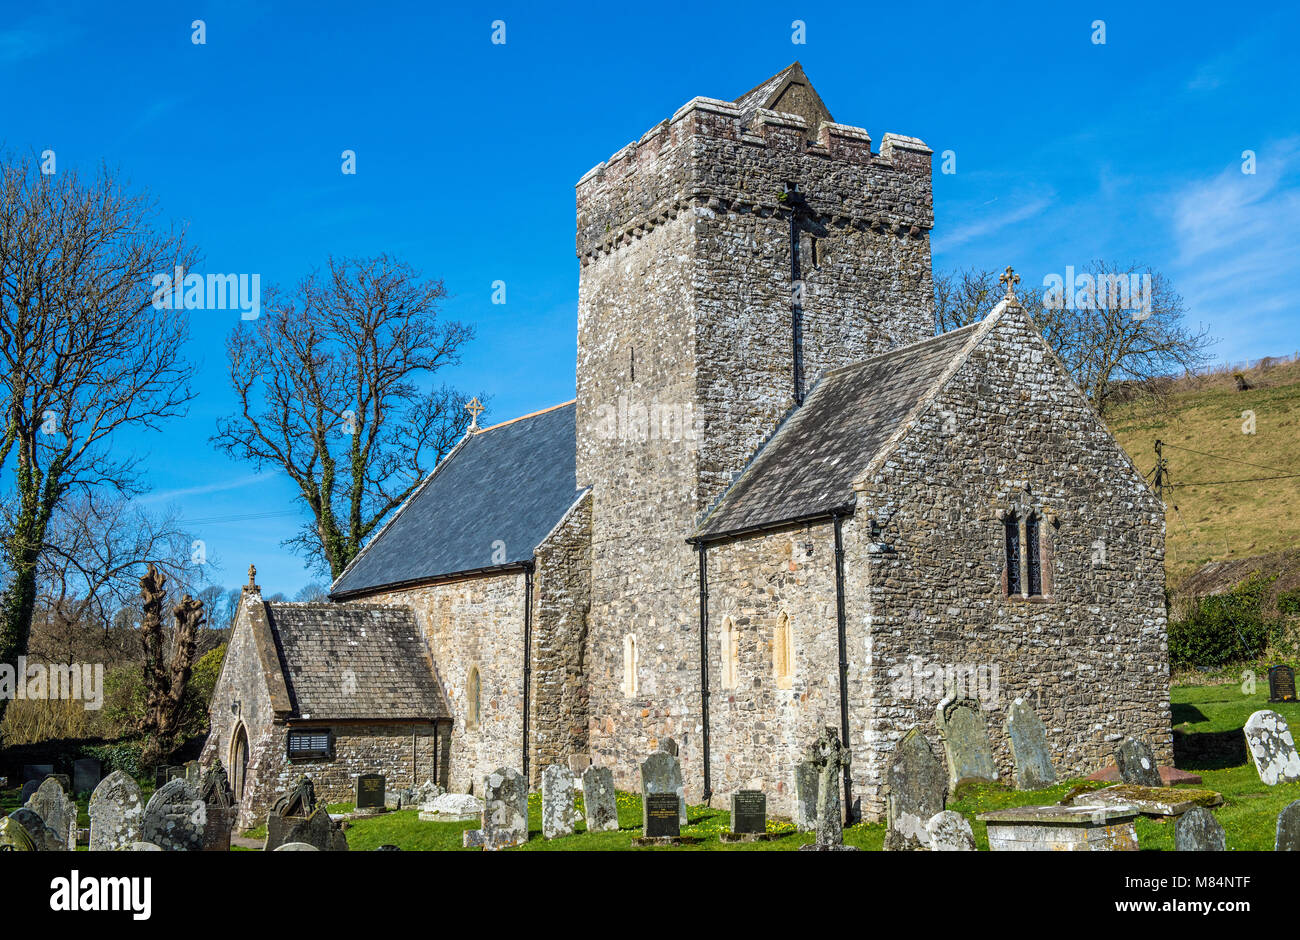 The Parish Church of St Cadoc in Cheriton, Gower, South Wales - Stock Image